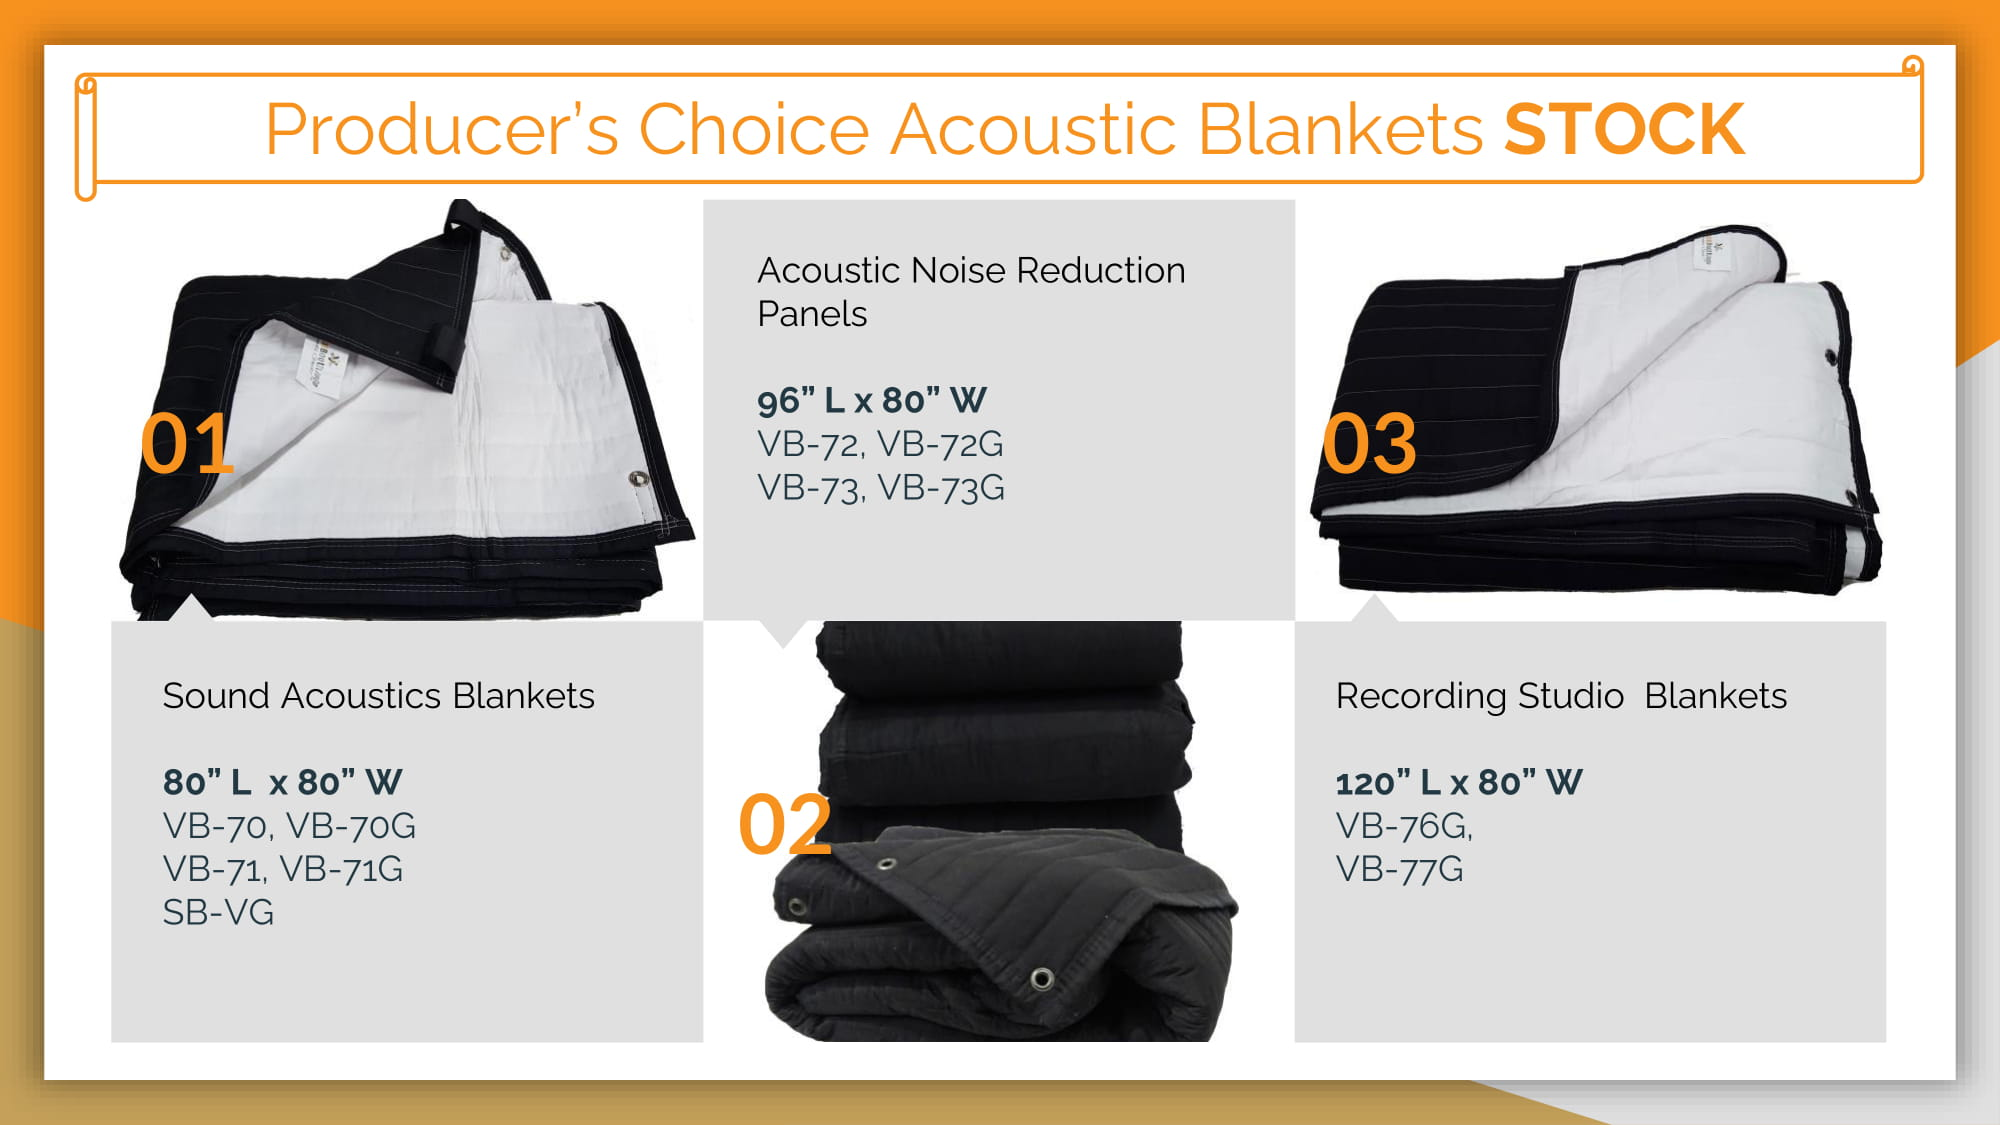 Producer's Choice Acoustic Blankets STOCK